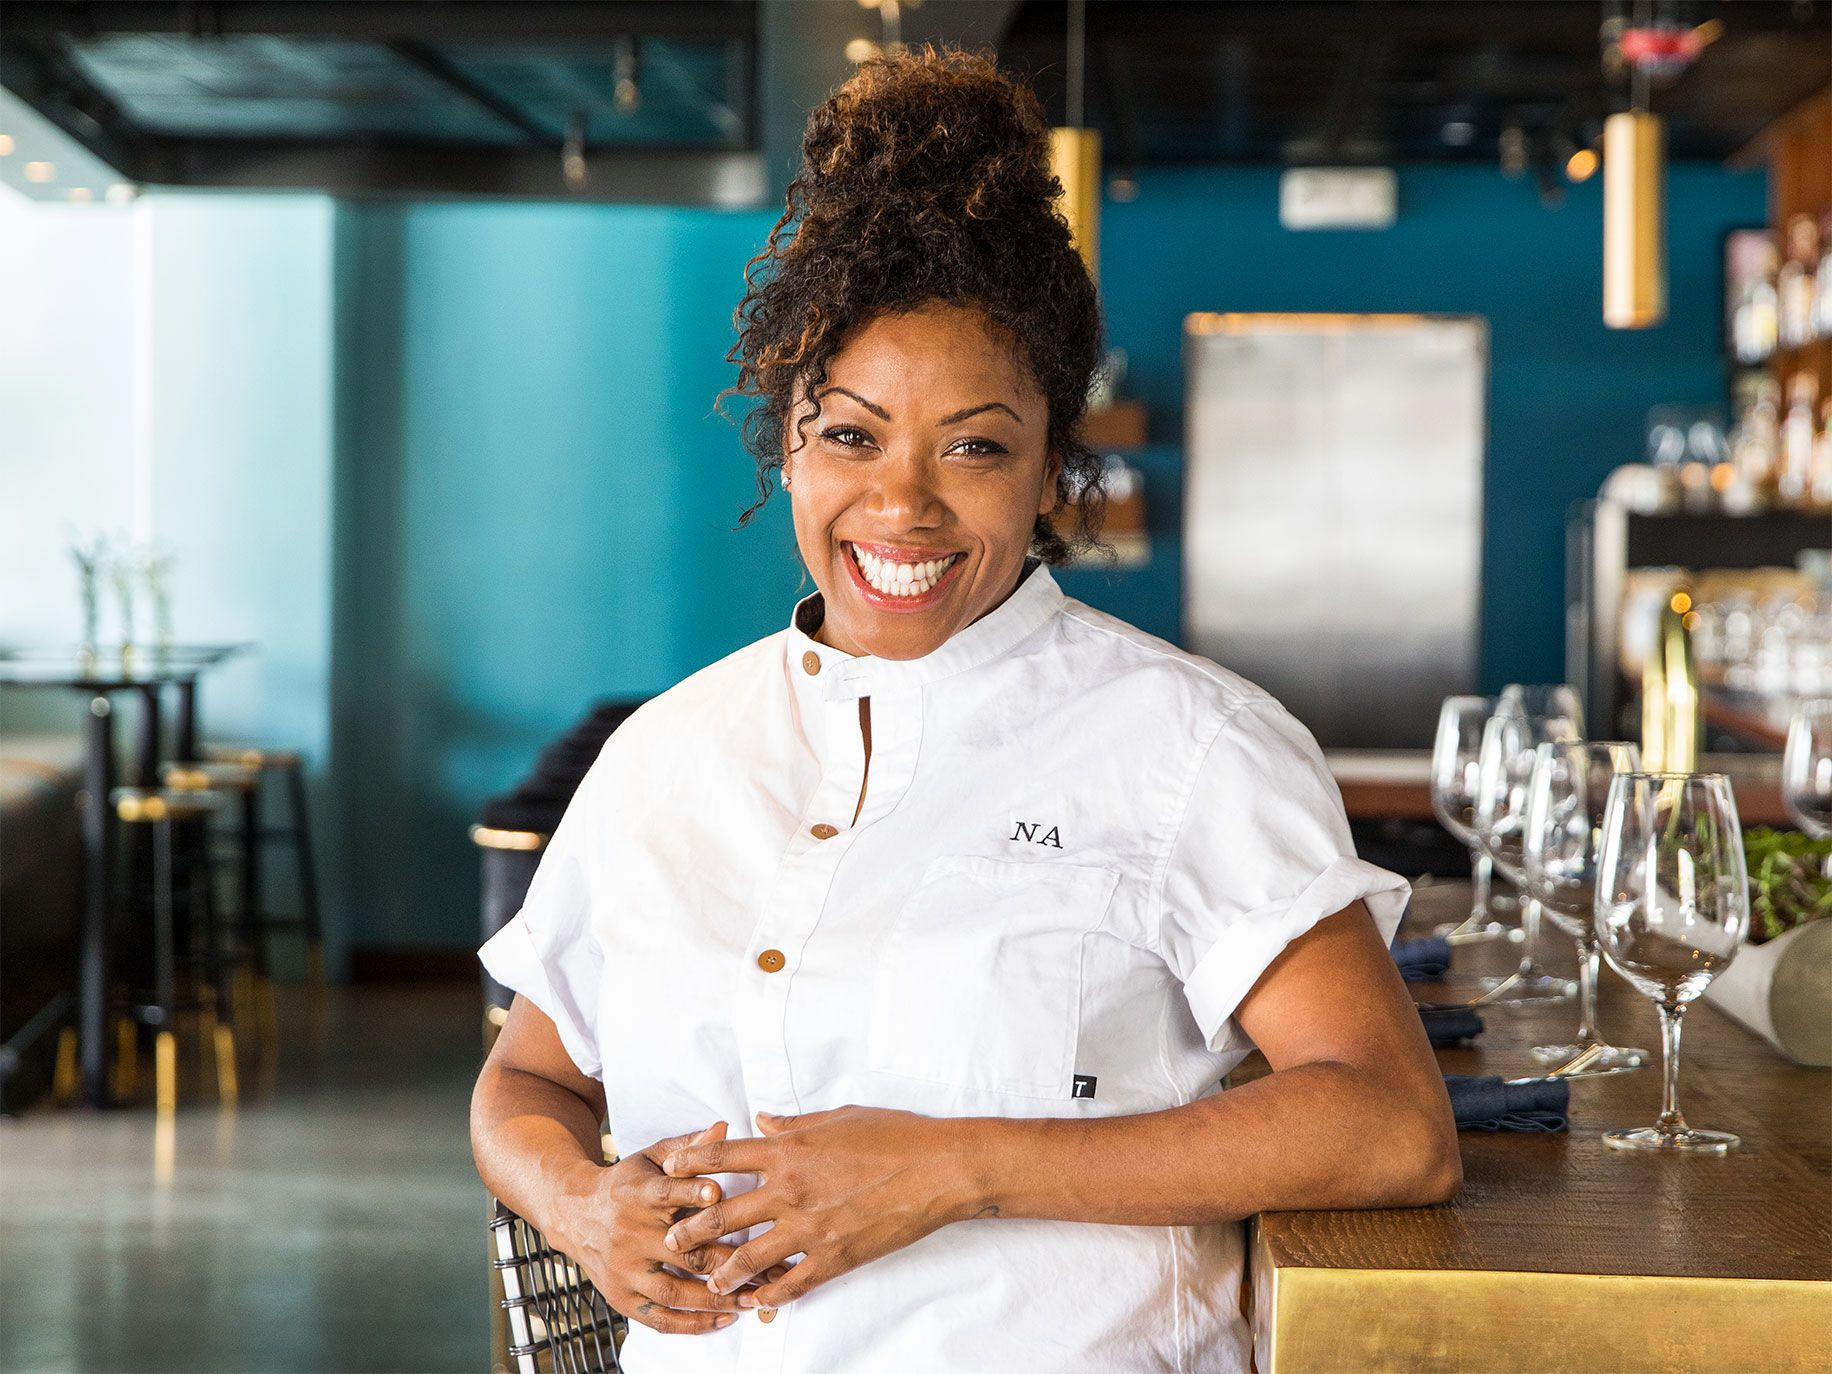 Native's owner and chef Nyesha J. Arrington.